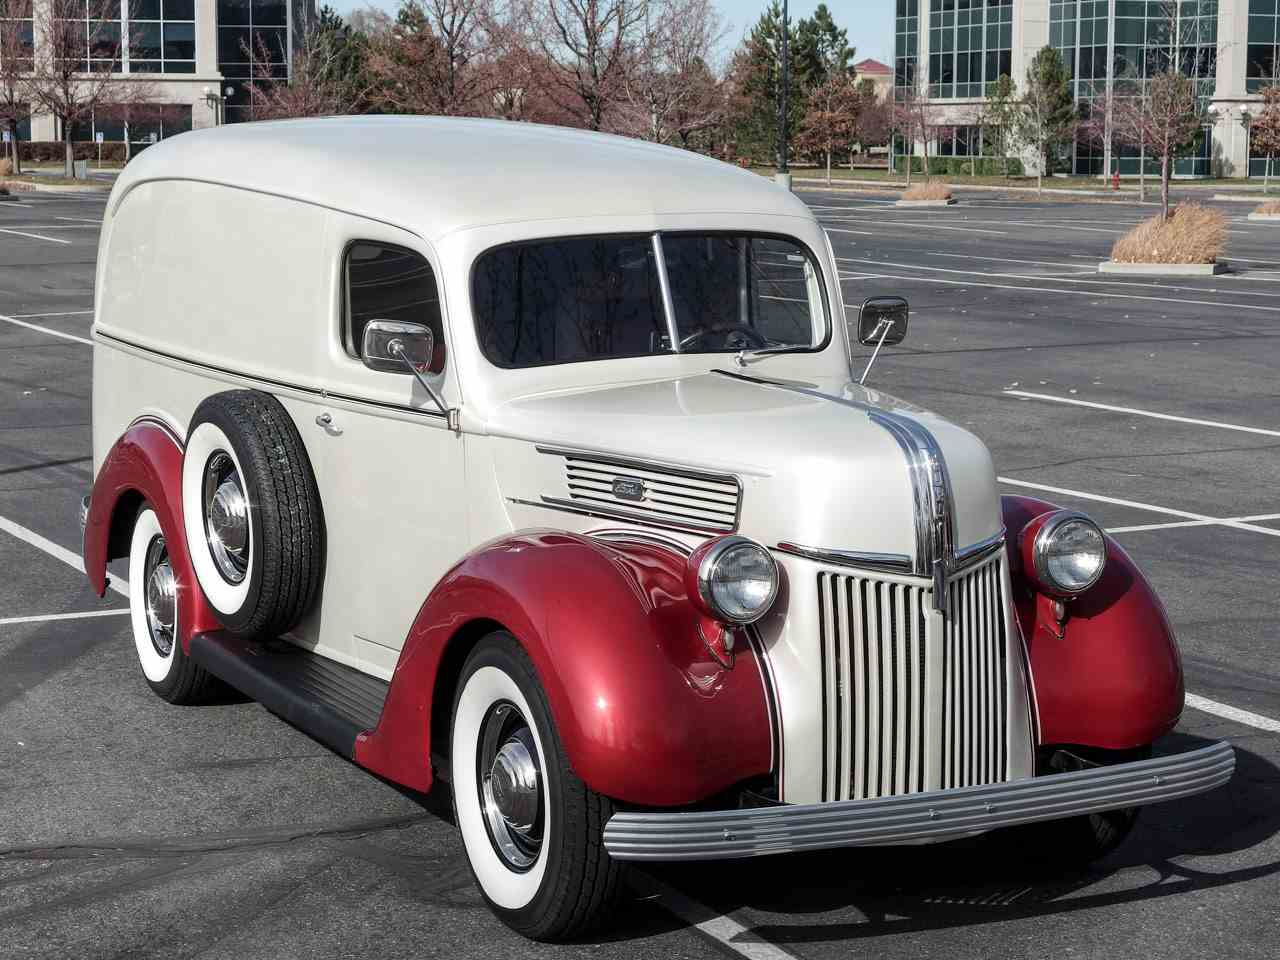 Ford Dealers Utah >> 1941 Ford Panel Truck for Sale | ClassicCars.com | CC-1048028